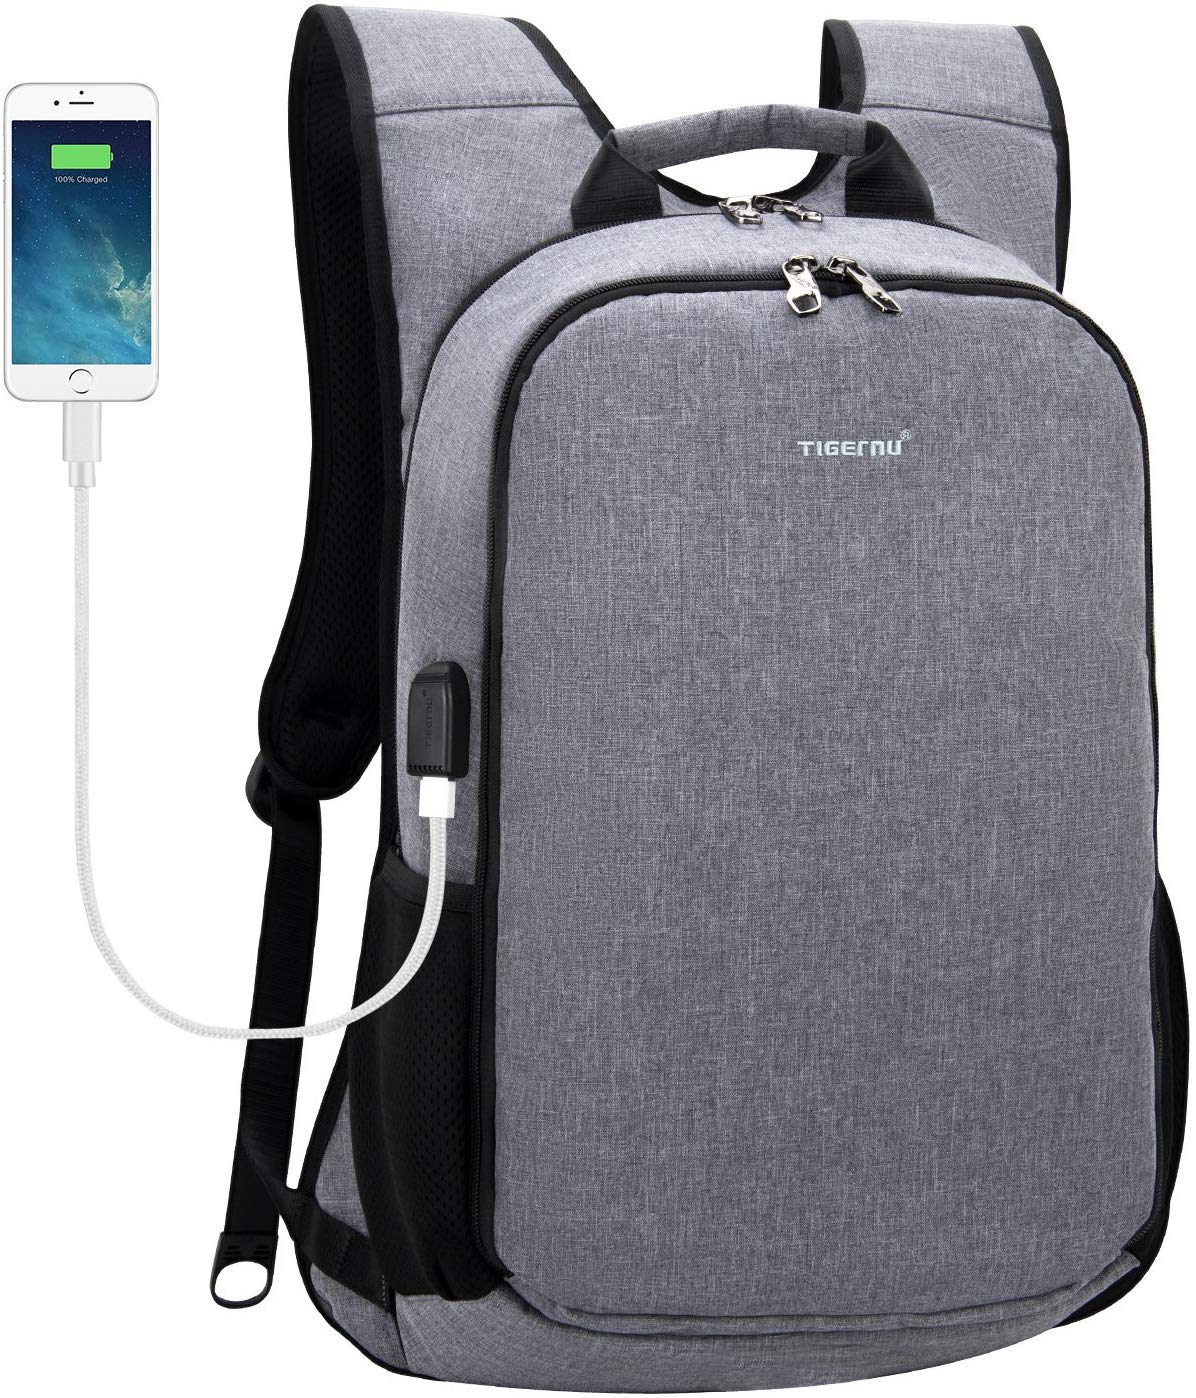 TIGERNU Laptop Backpack for 15 15.6 Inch Laptops Notebook